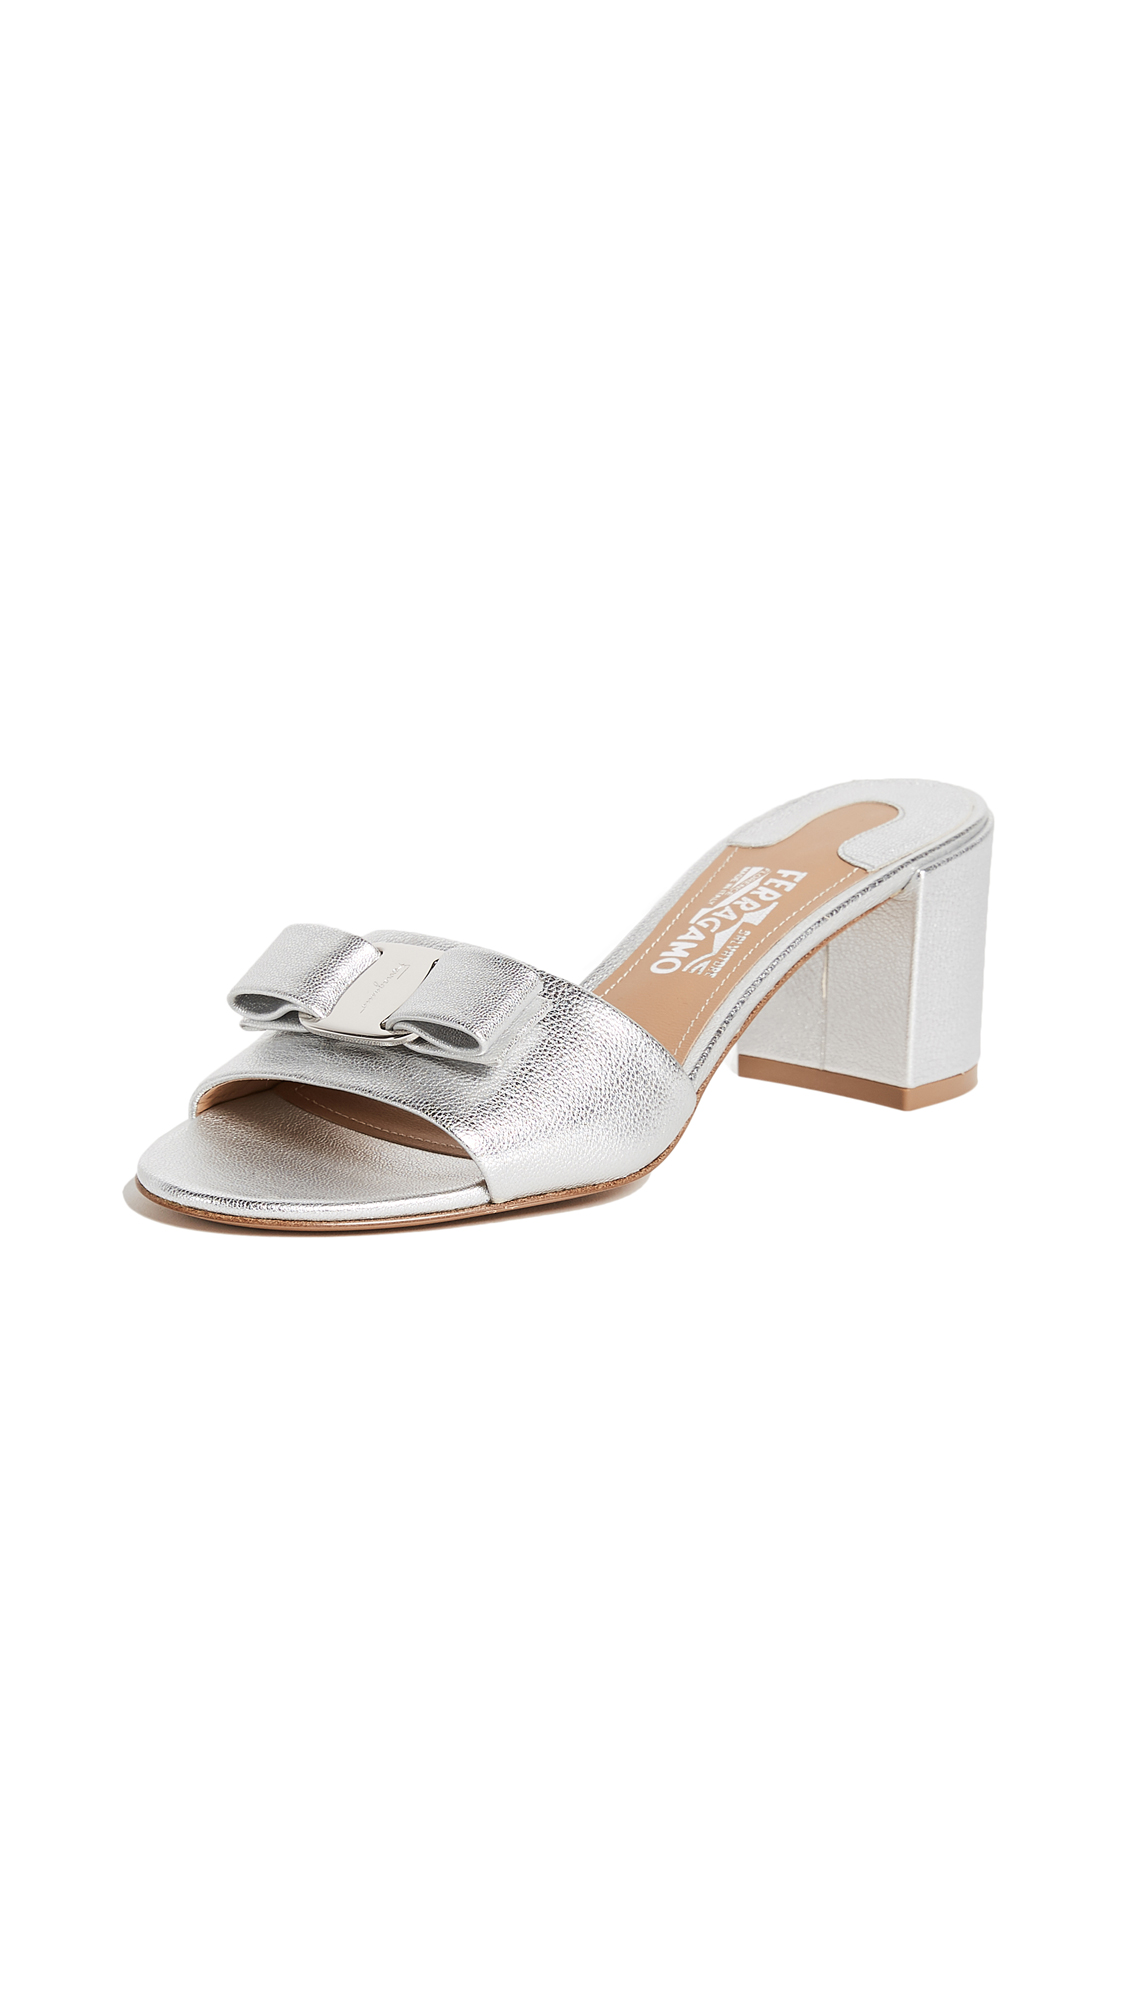 Salvatore Ferragamo Eolie City Slides - Argento